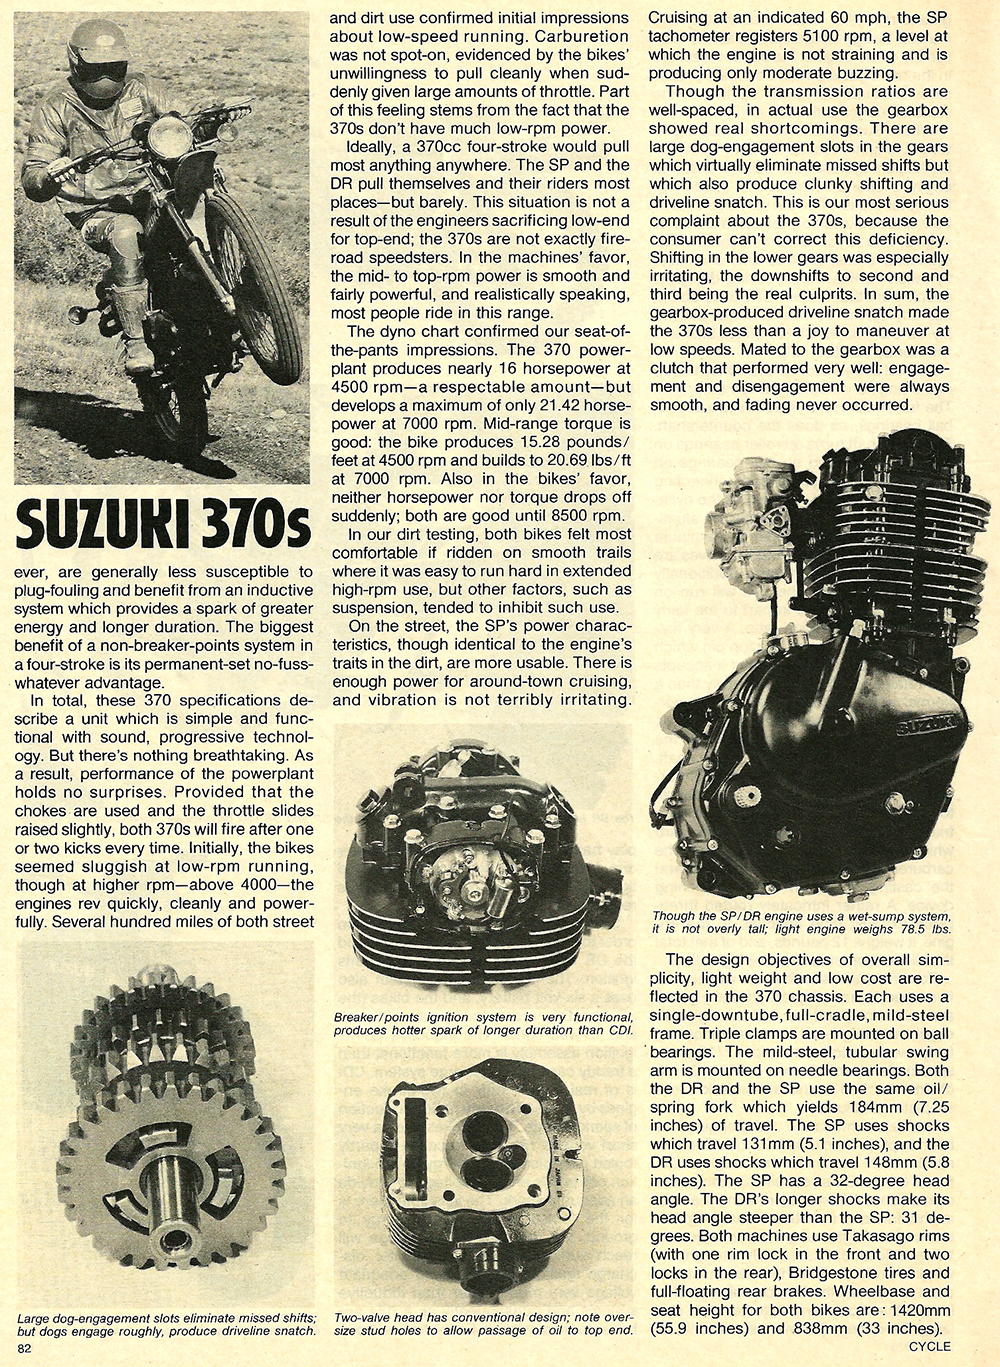 1978 Suzuki DR SP 370 road test 05.jpg